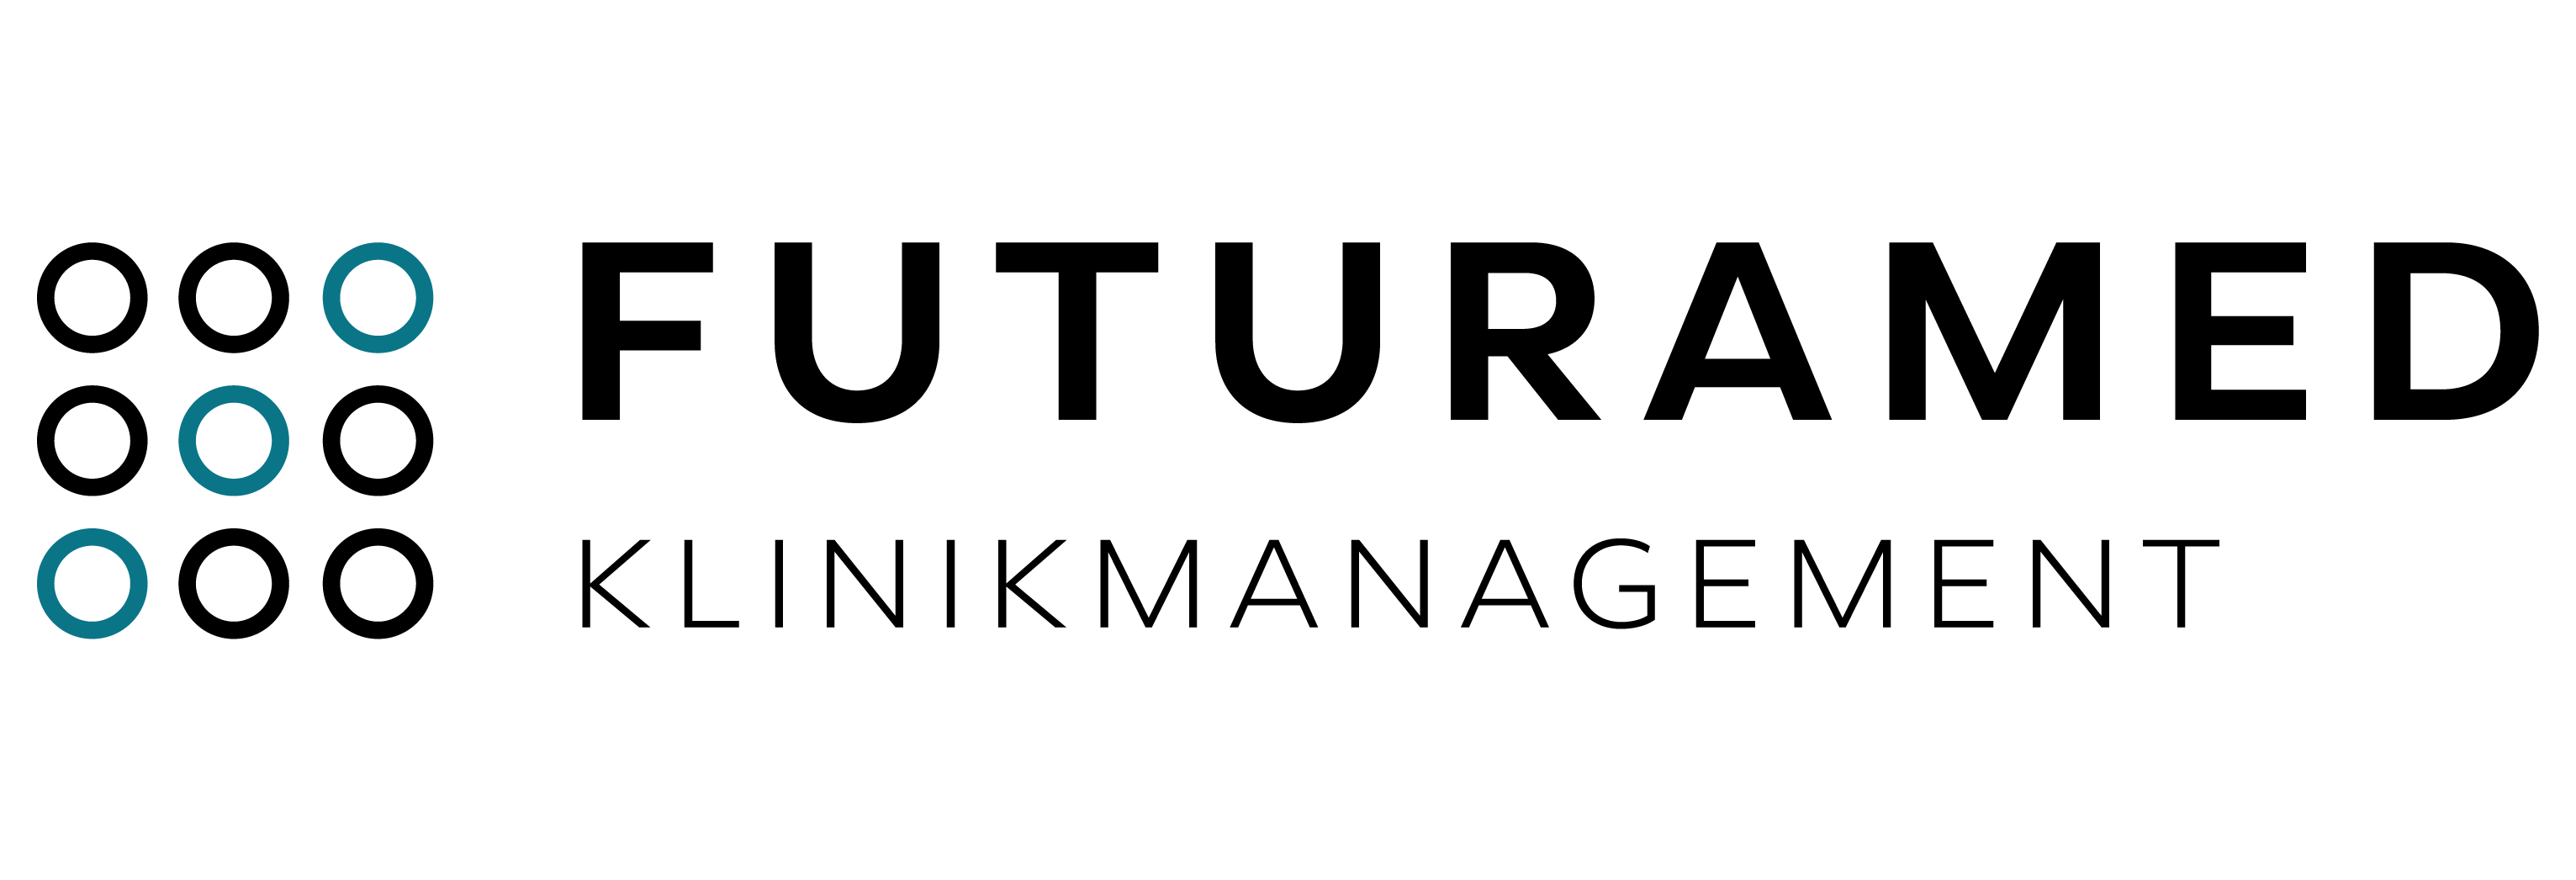 Futuramed GmBh